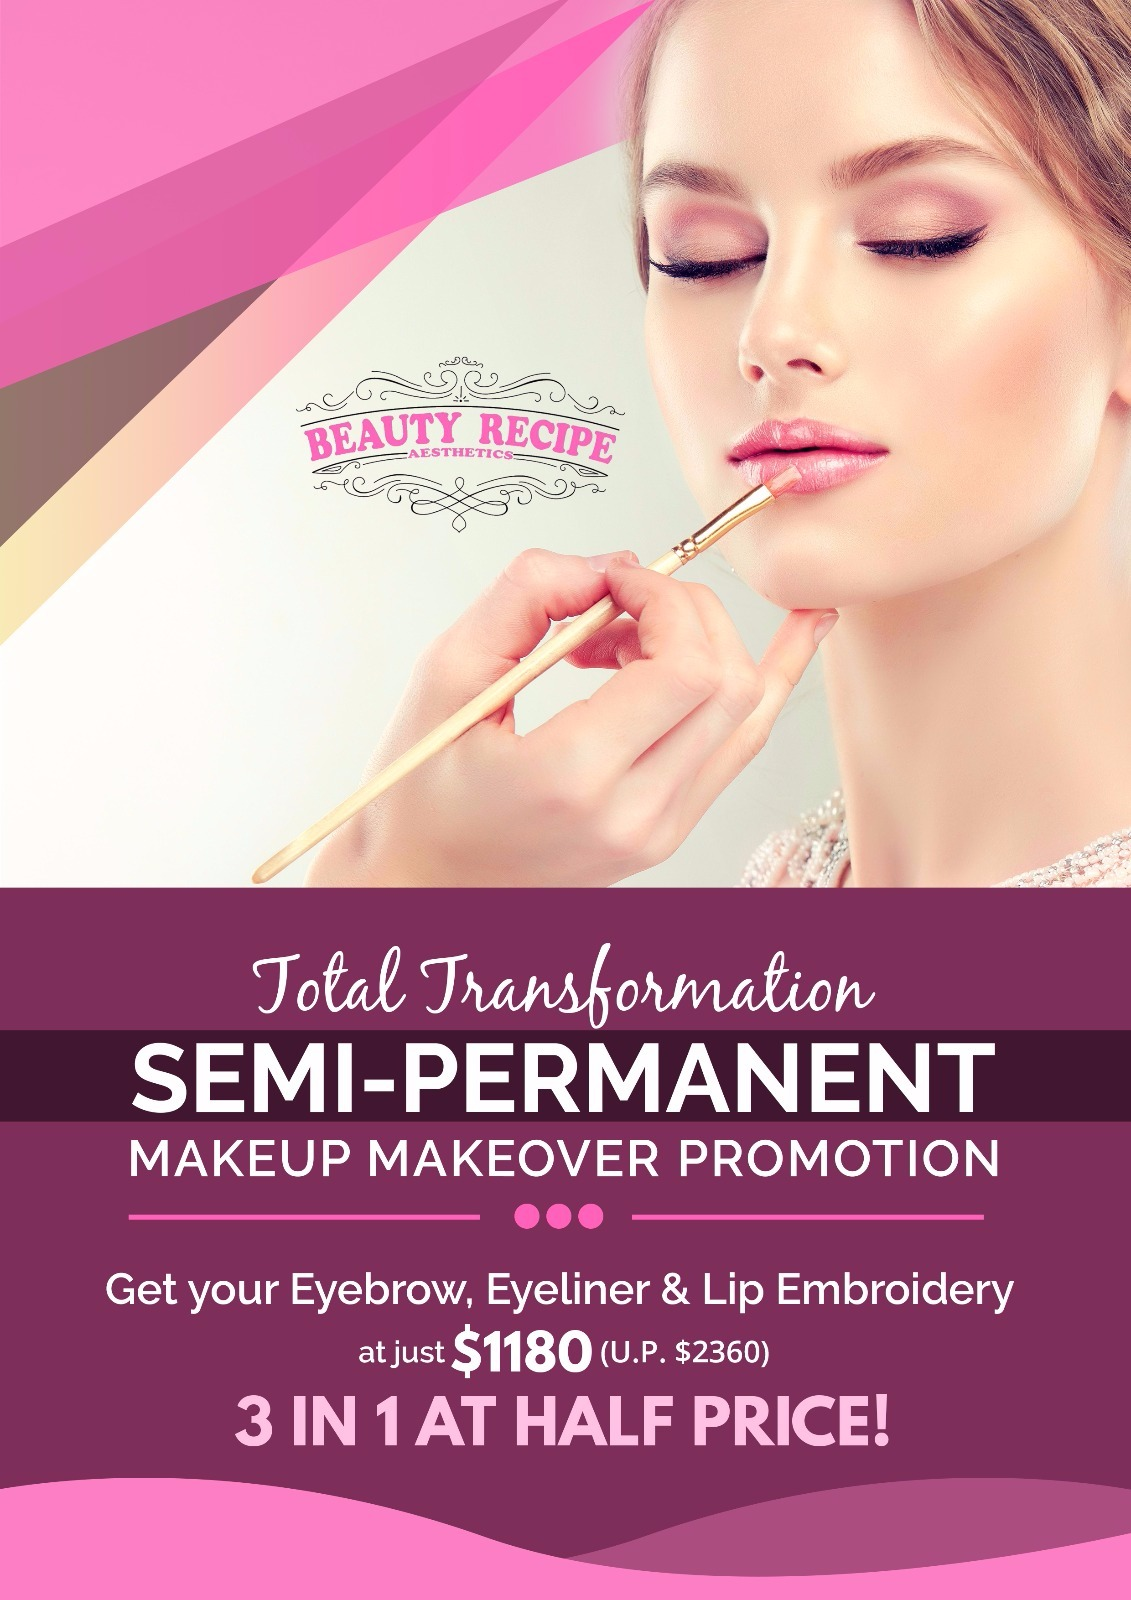 Hello beauties! Make your day fantastic with Beauty Recipe